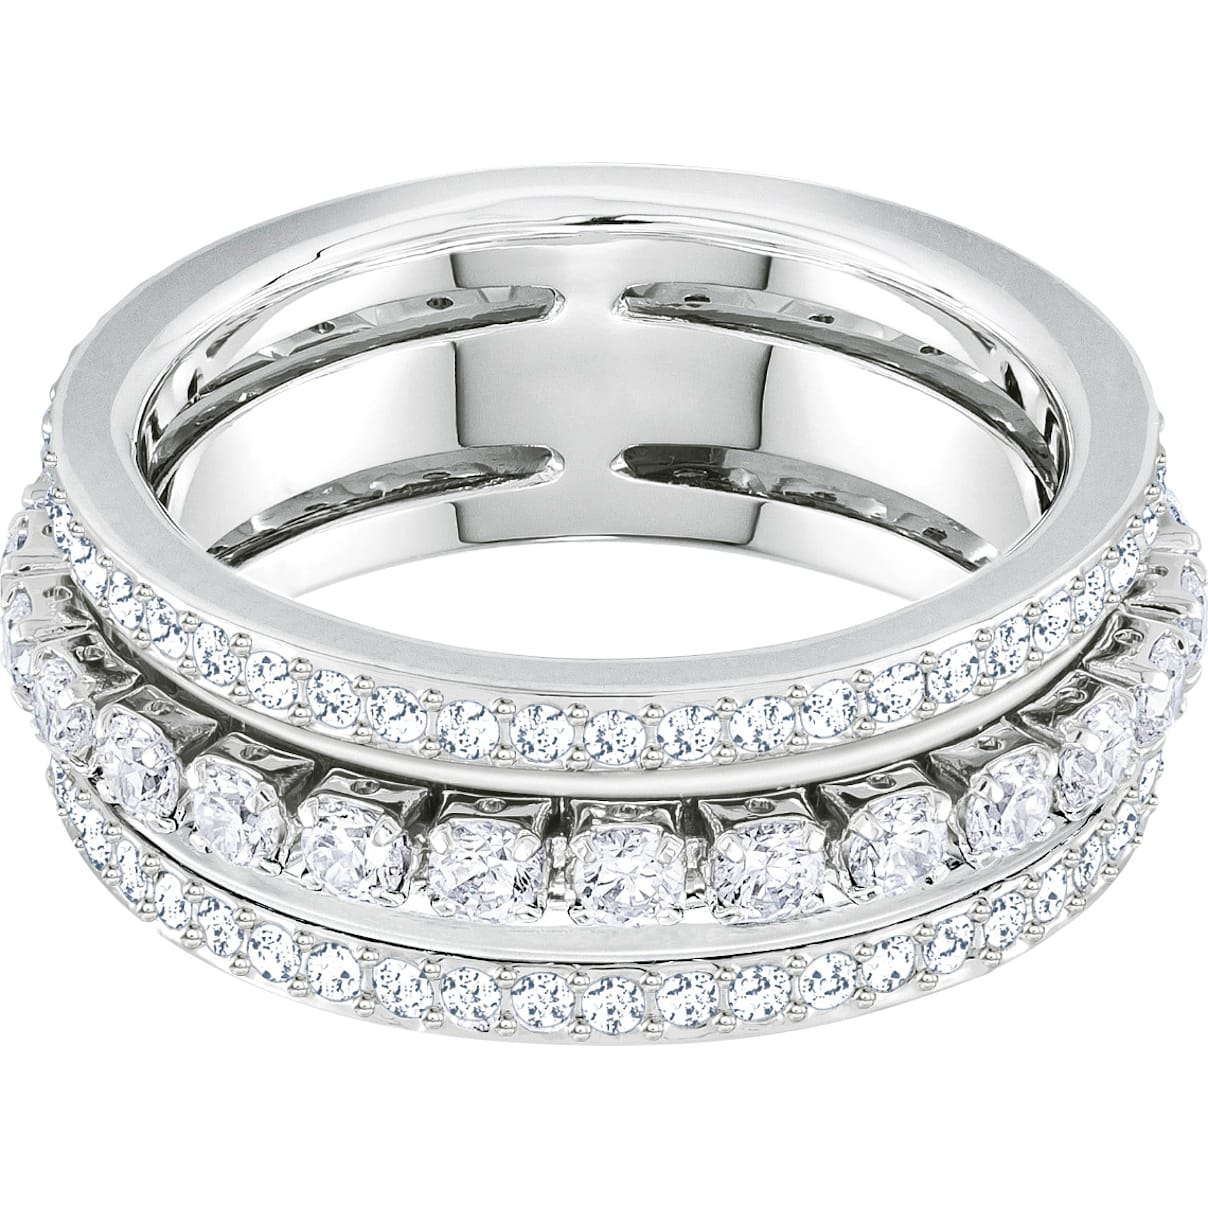 Swarovski Further Ring, White, Rhodium plated